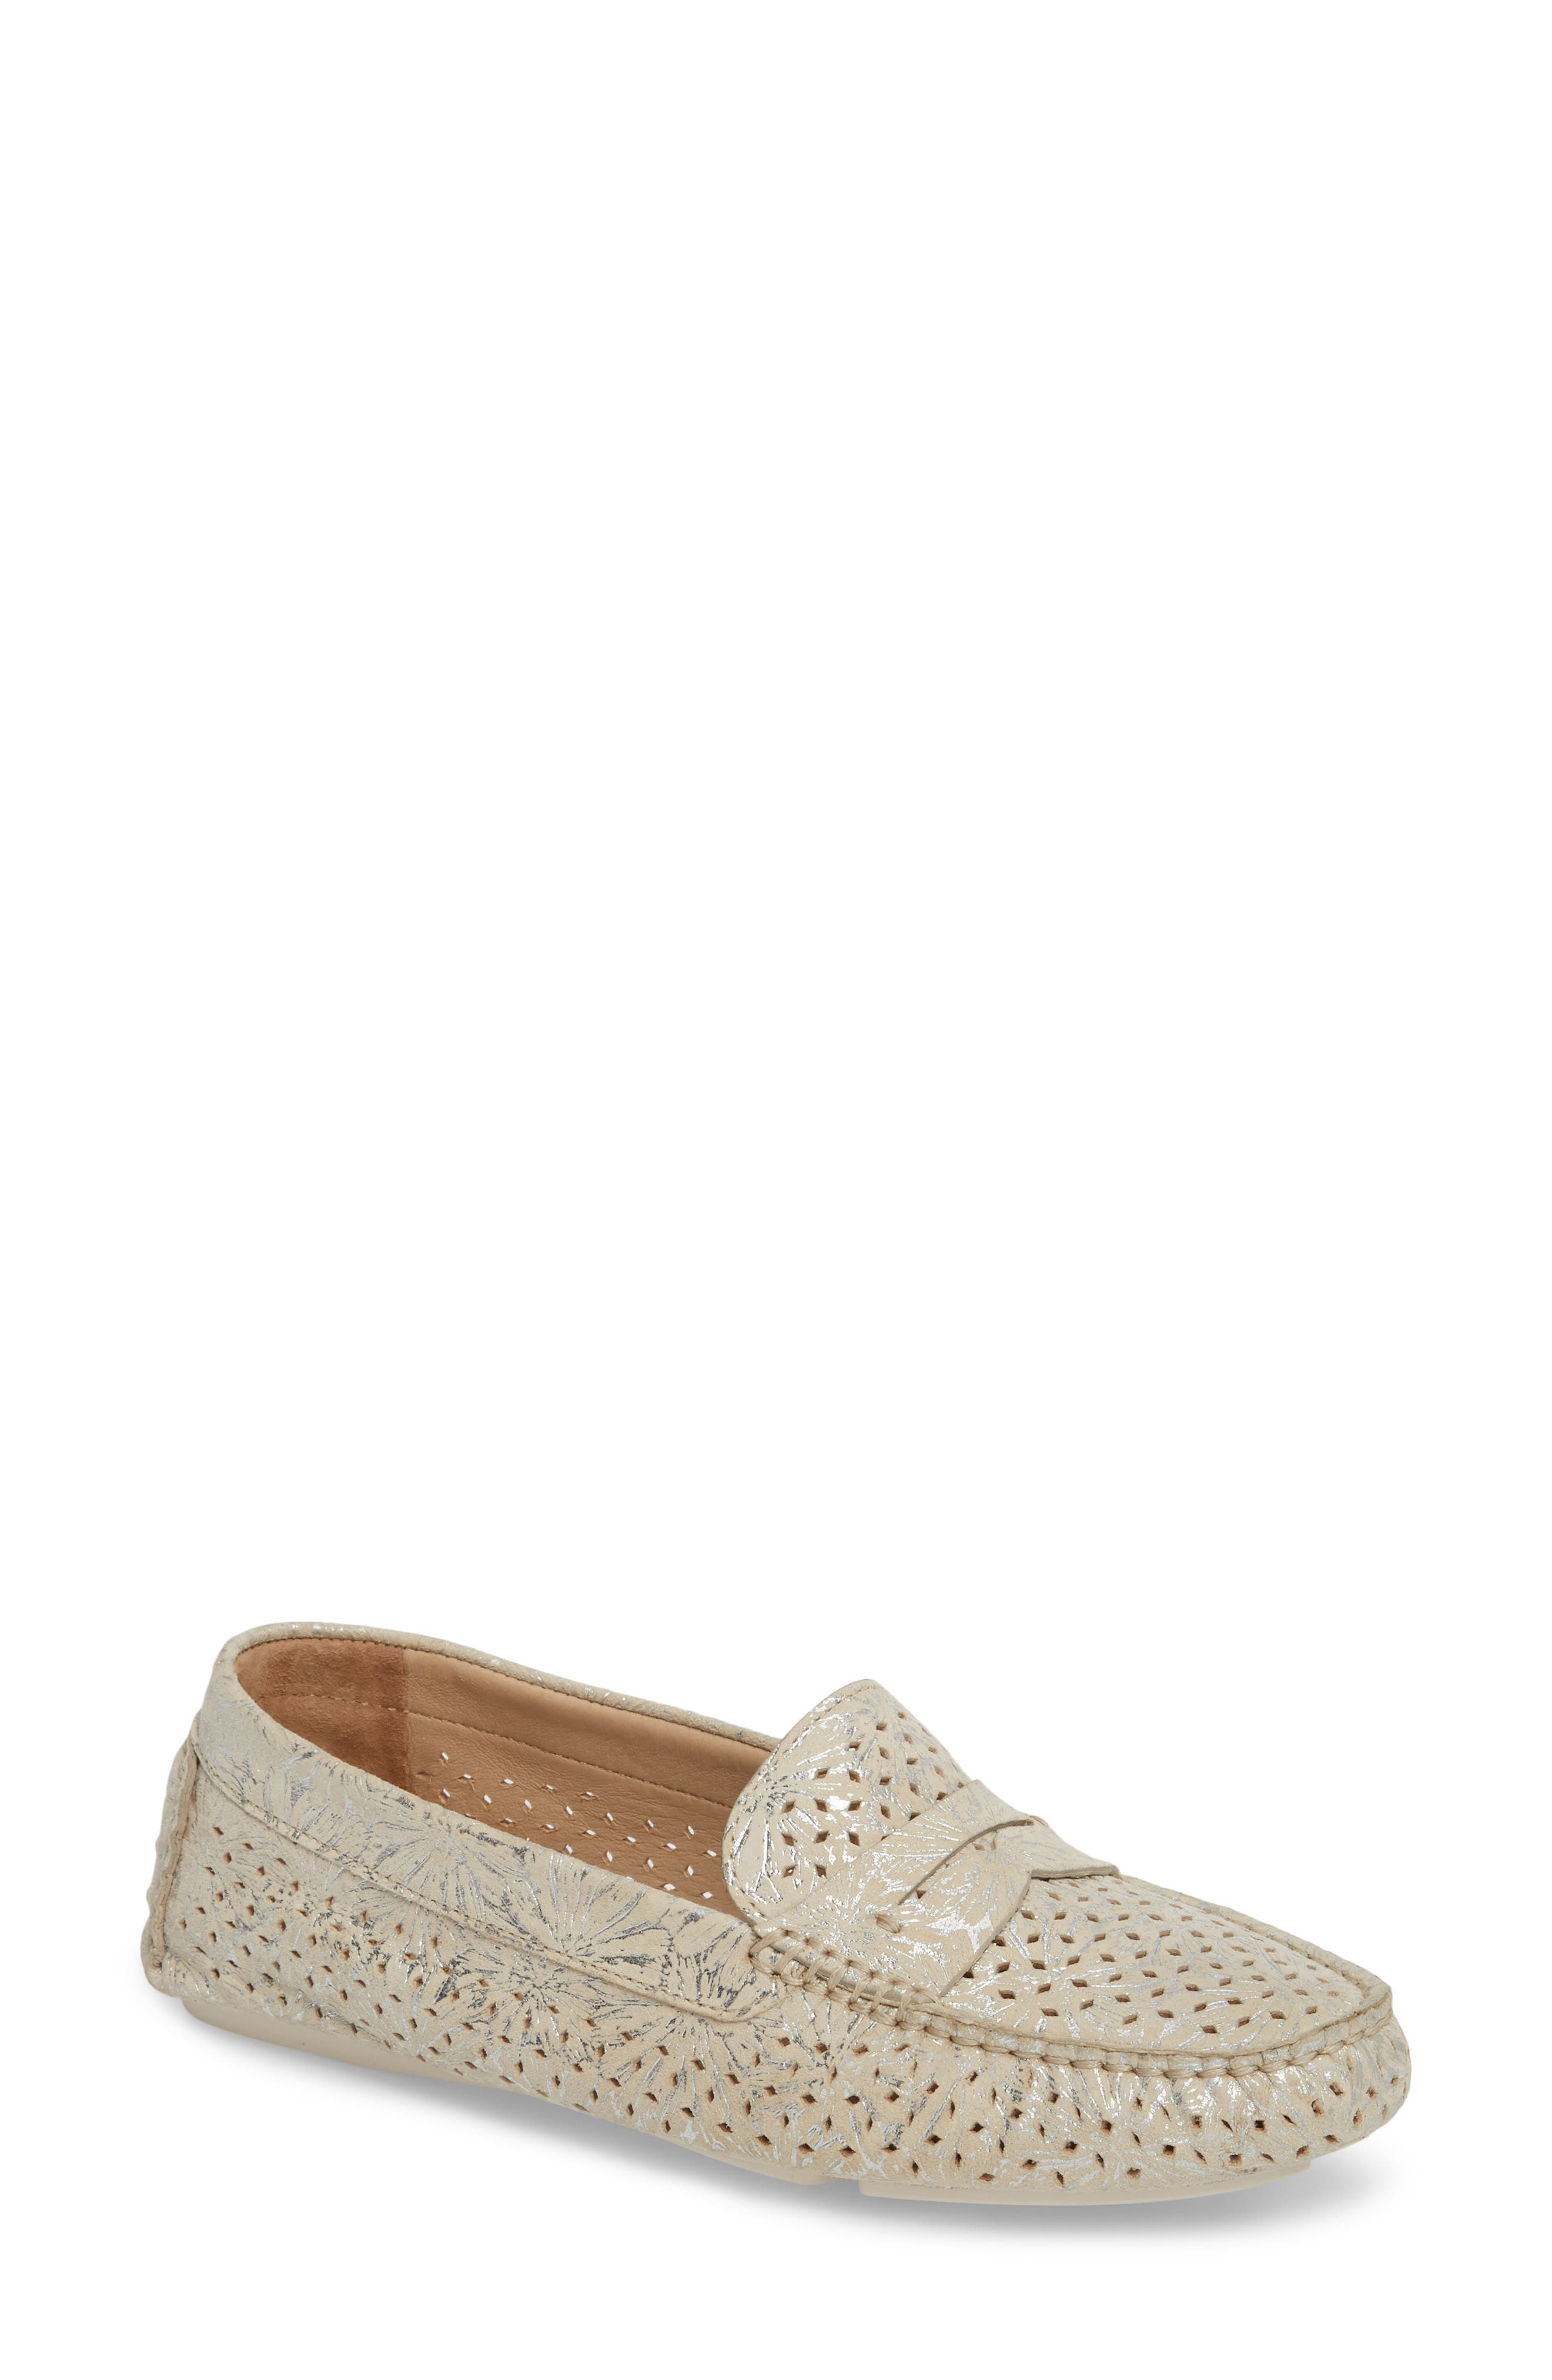 'Maggie' Penny Loafer,                         Main,                         color, Cream Suede